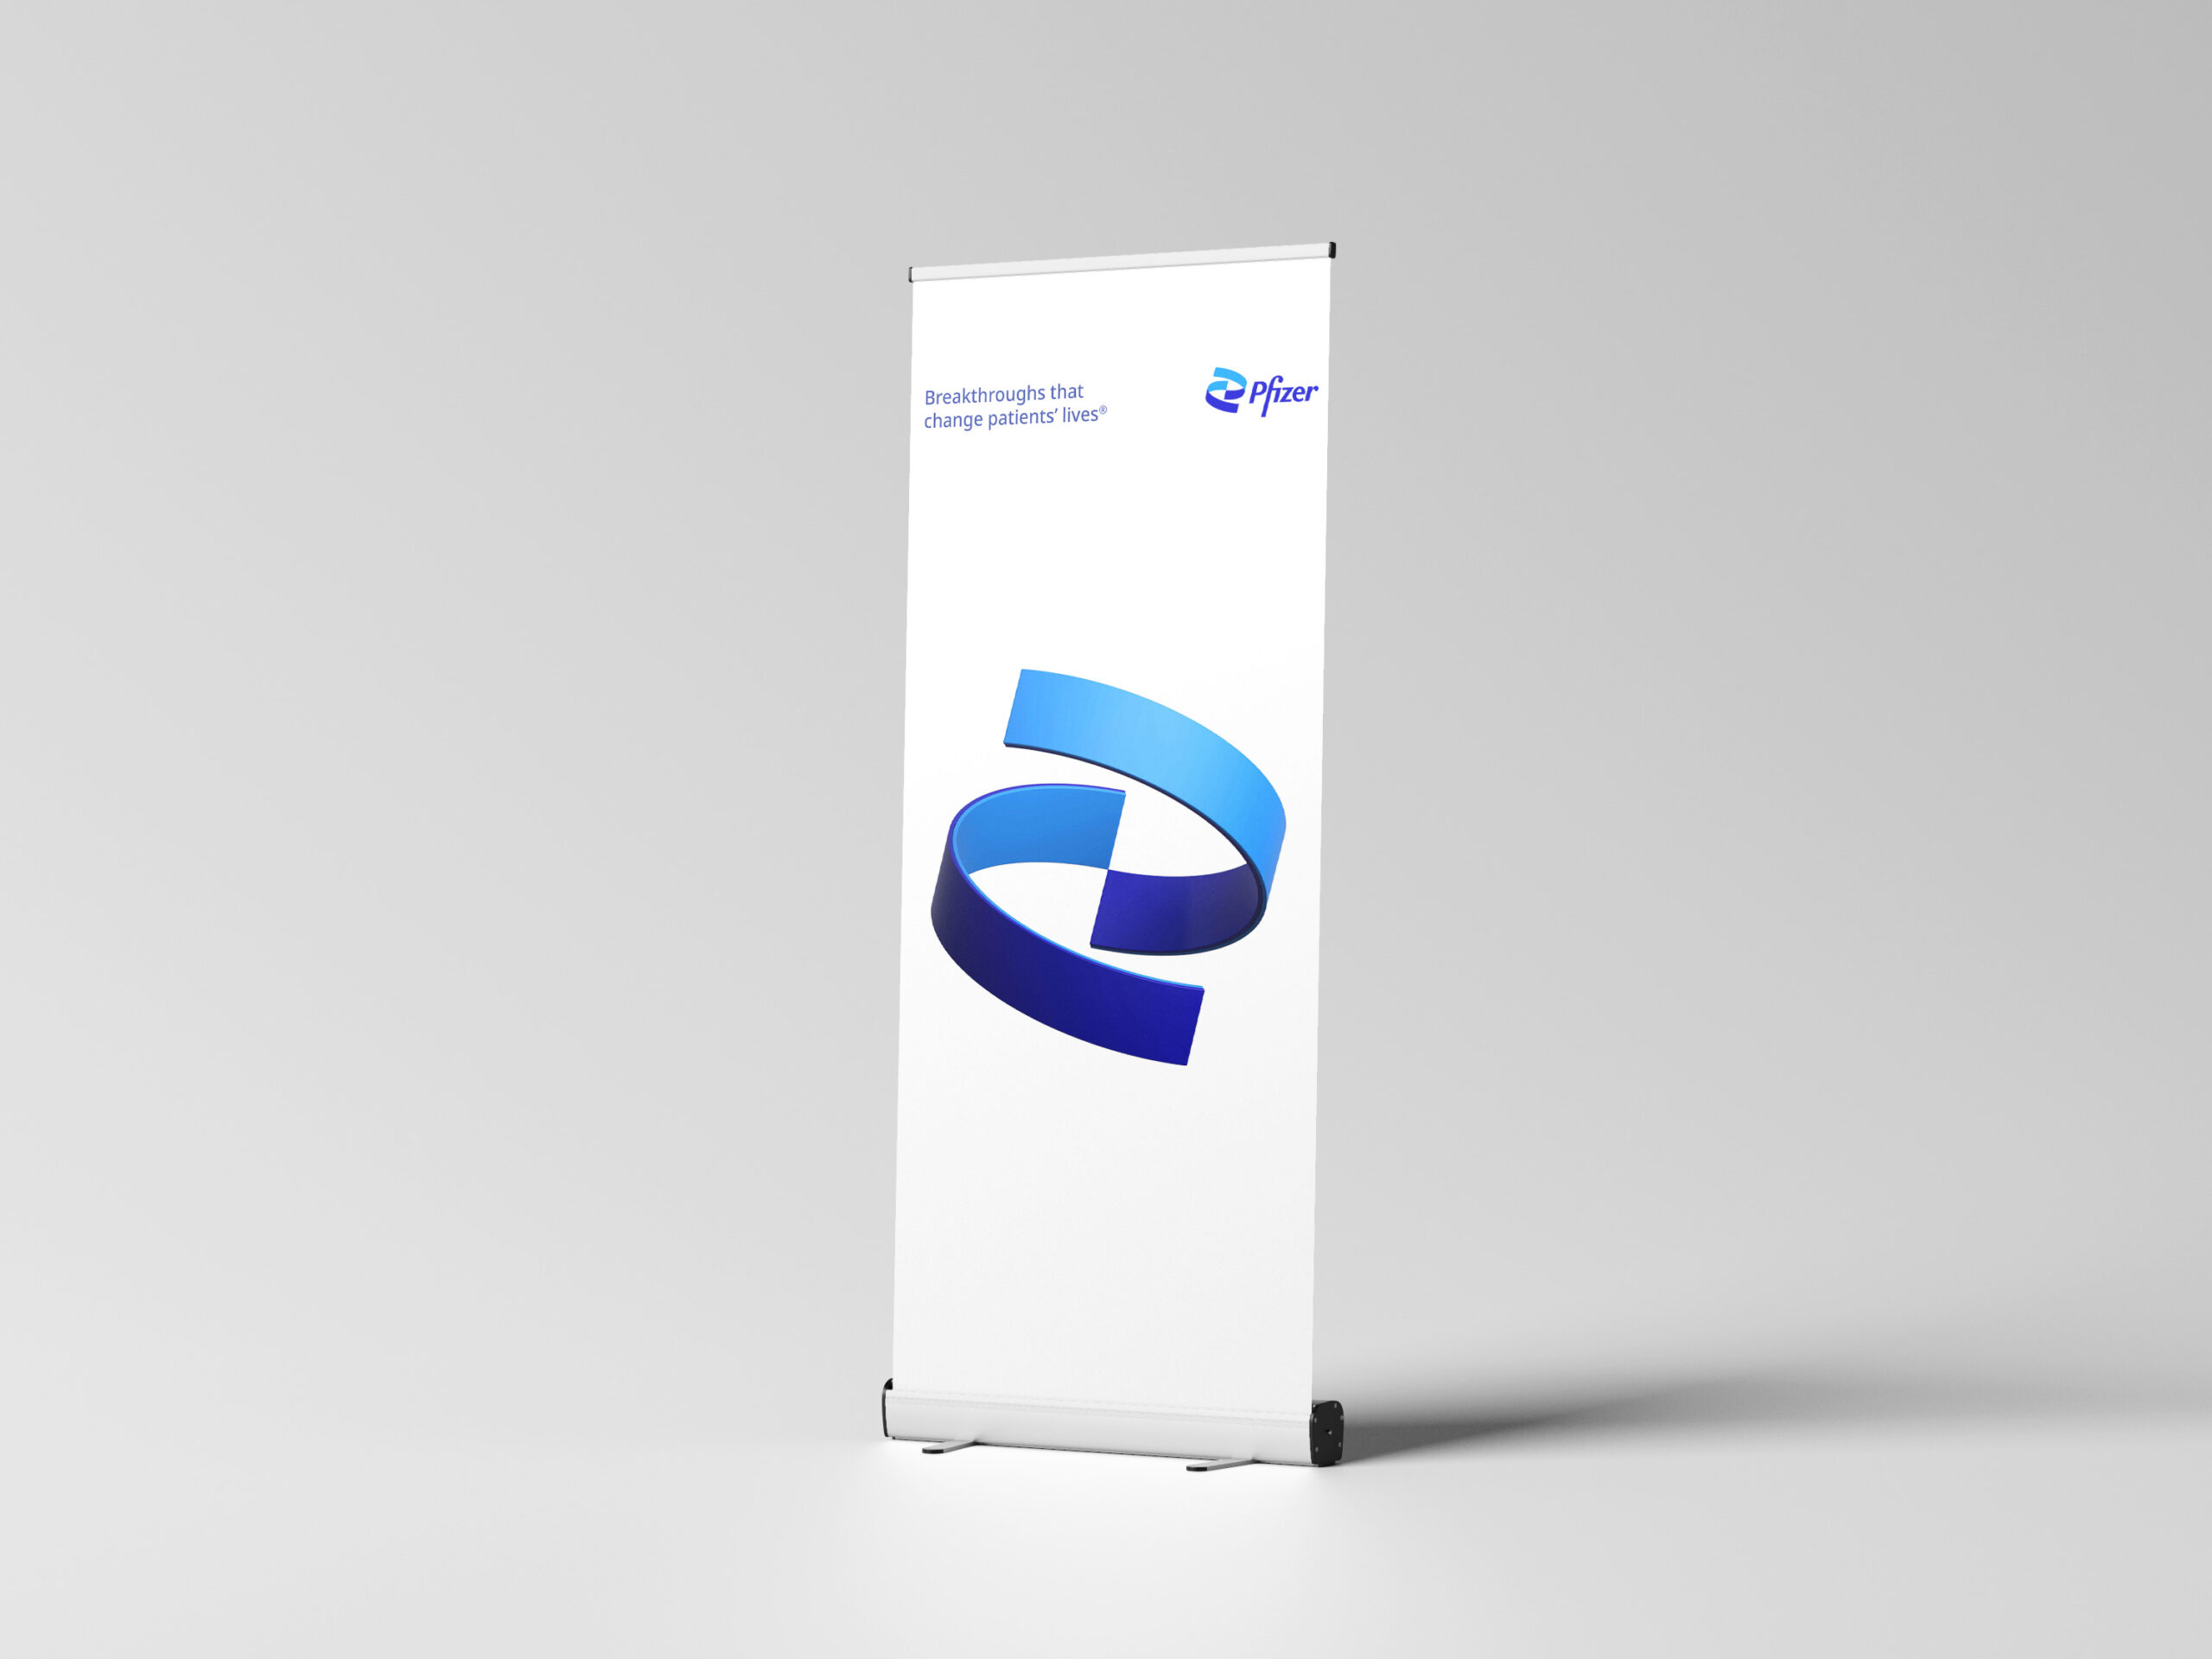 Pfizer Pull-Up Stand